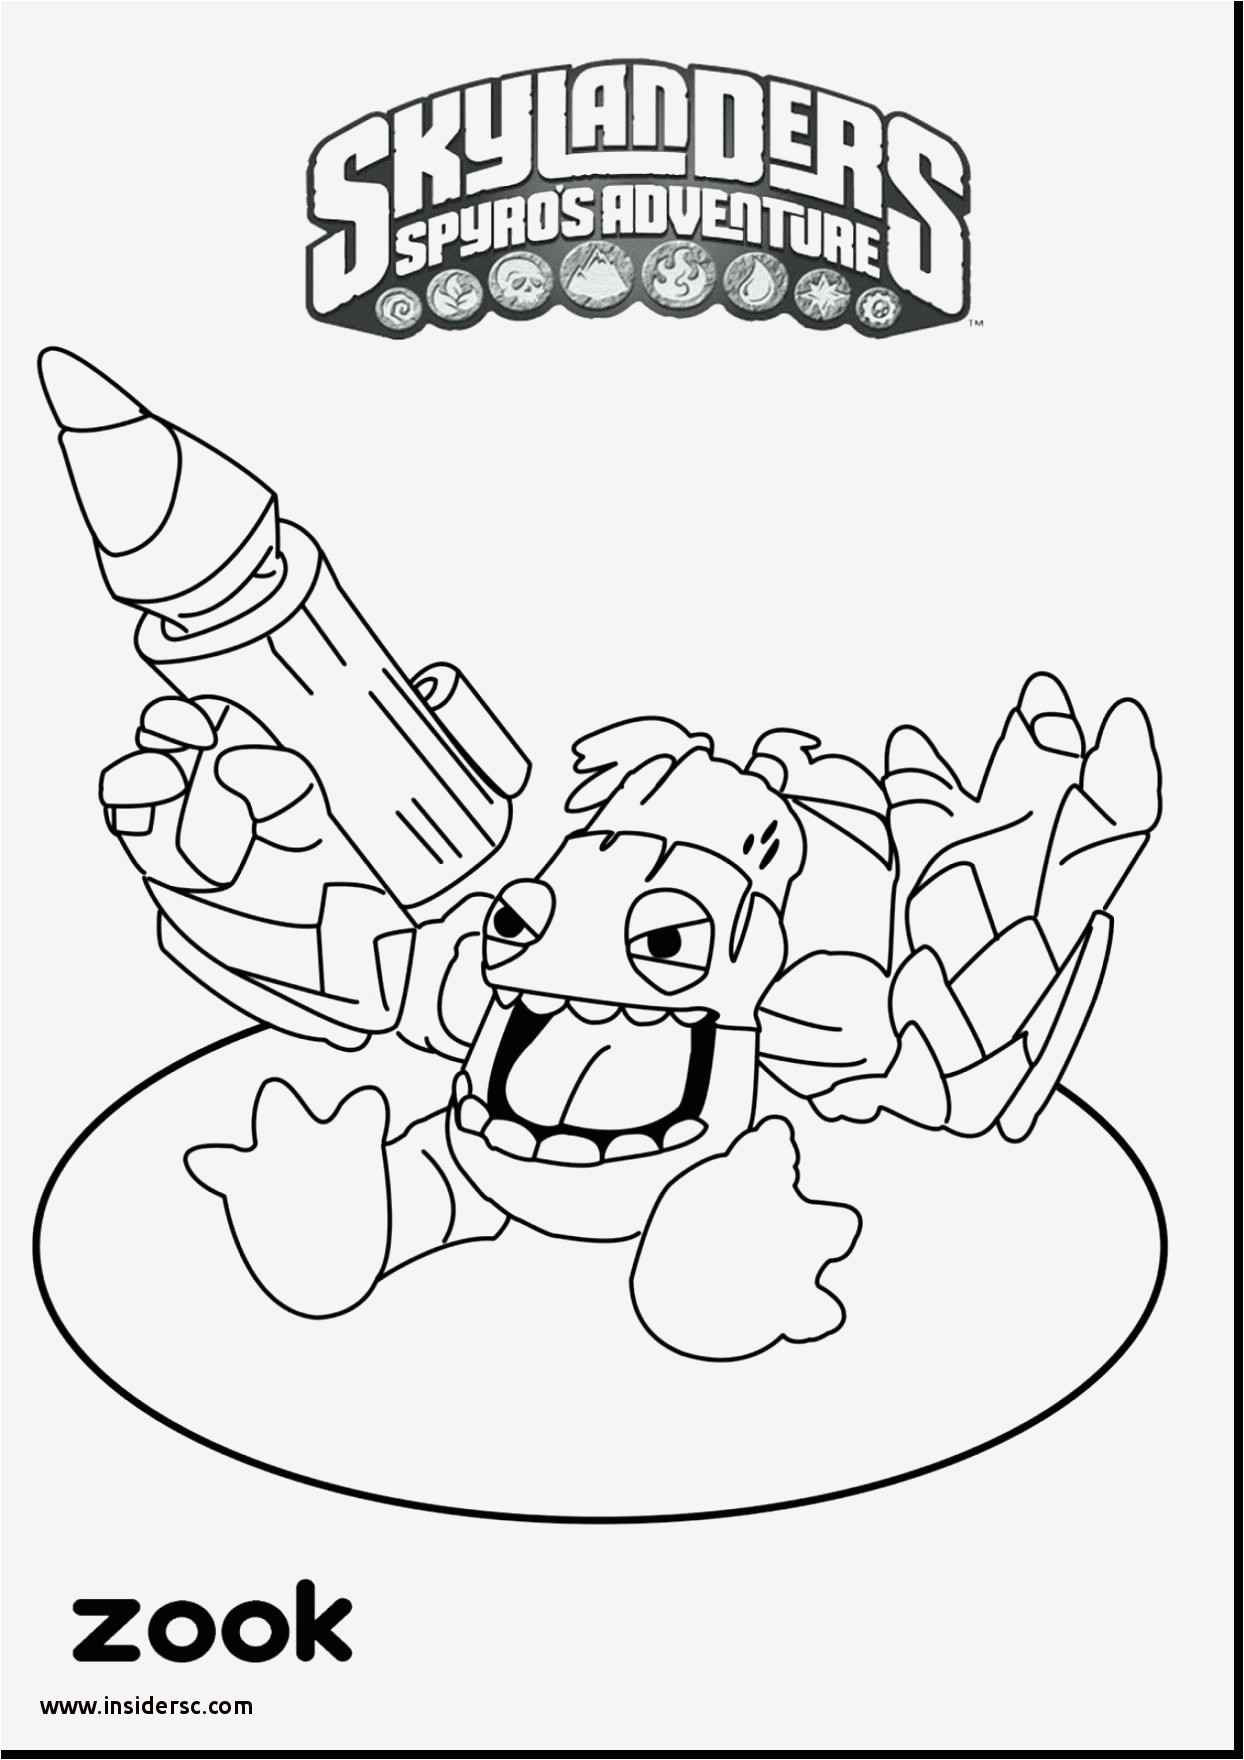 Pilgrim Indian Coloring Pages Best Of Thanksgiving Pilgrim Coloring Pages Qulu